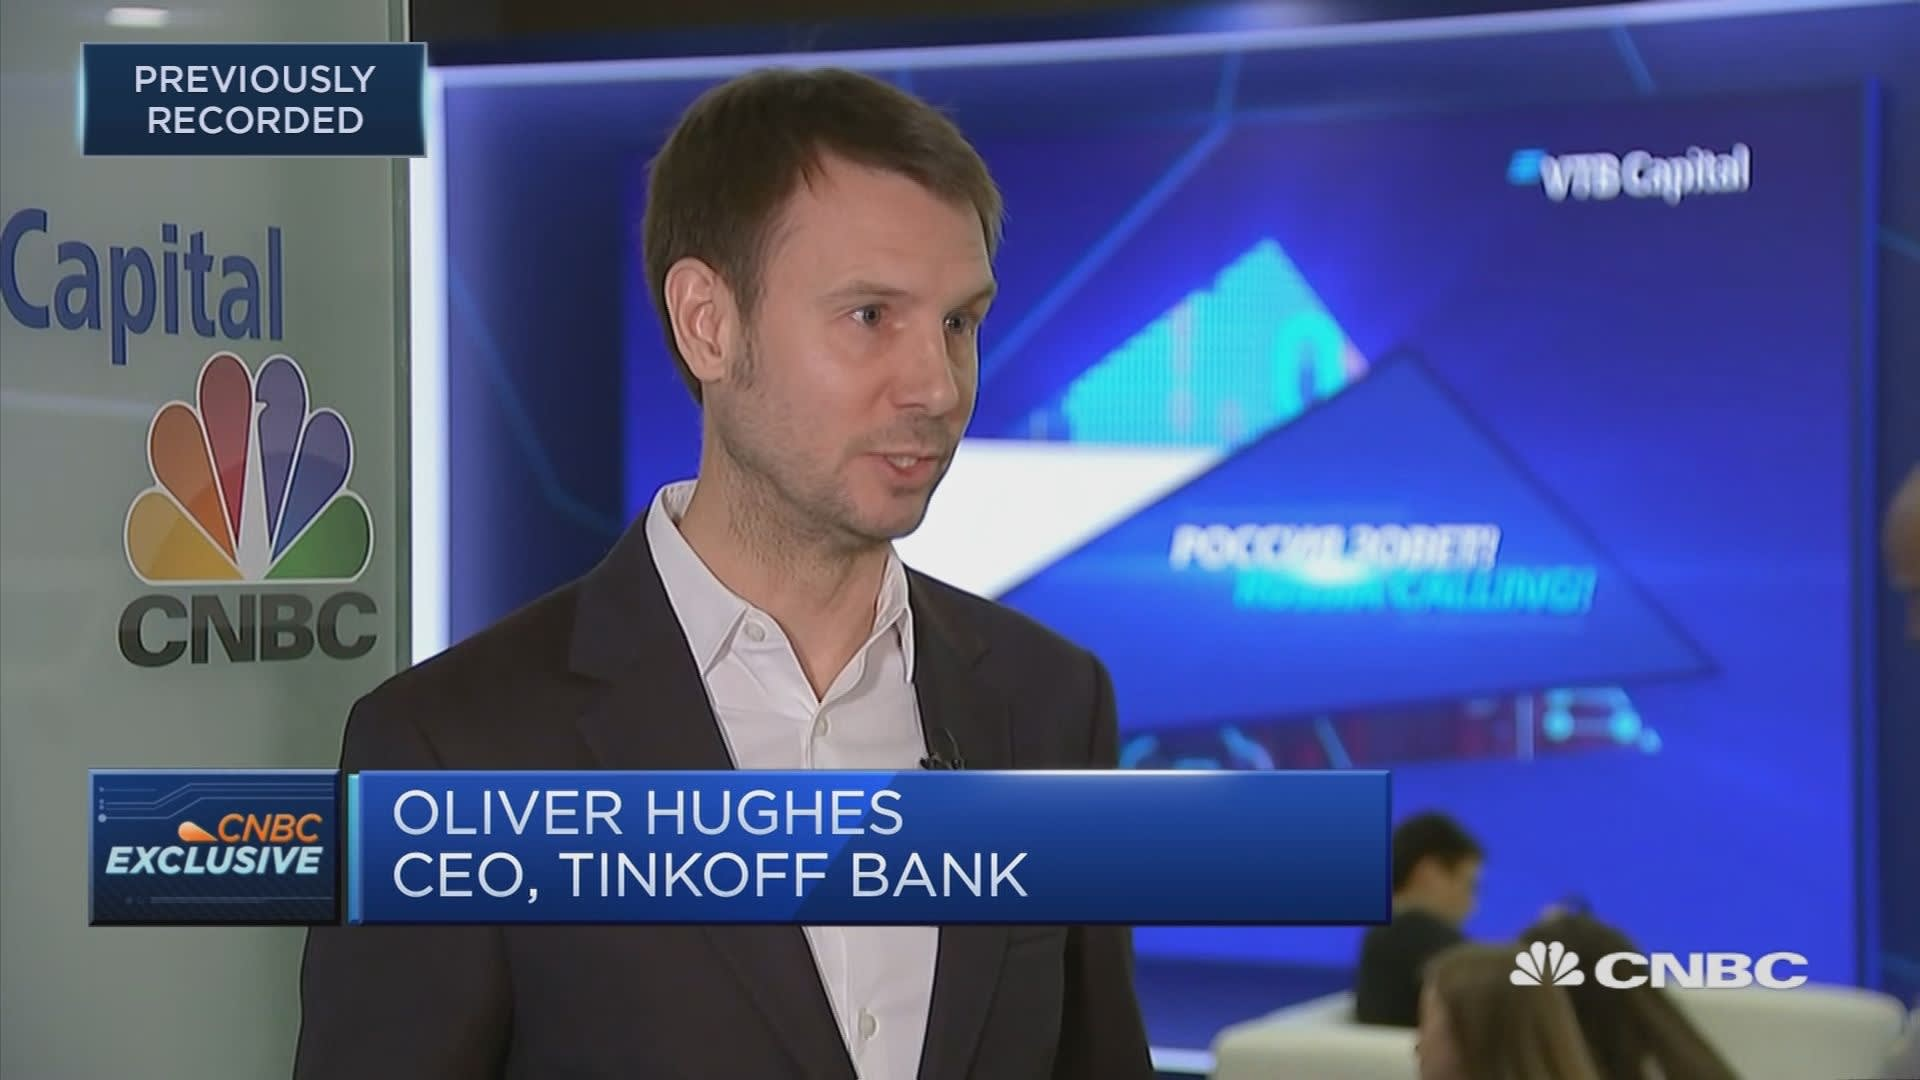 Tinkoff Bank CEO: Outlook is good going into next year